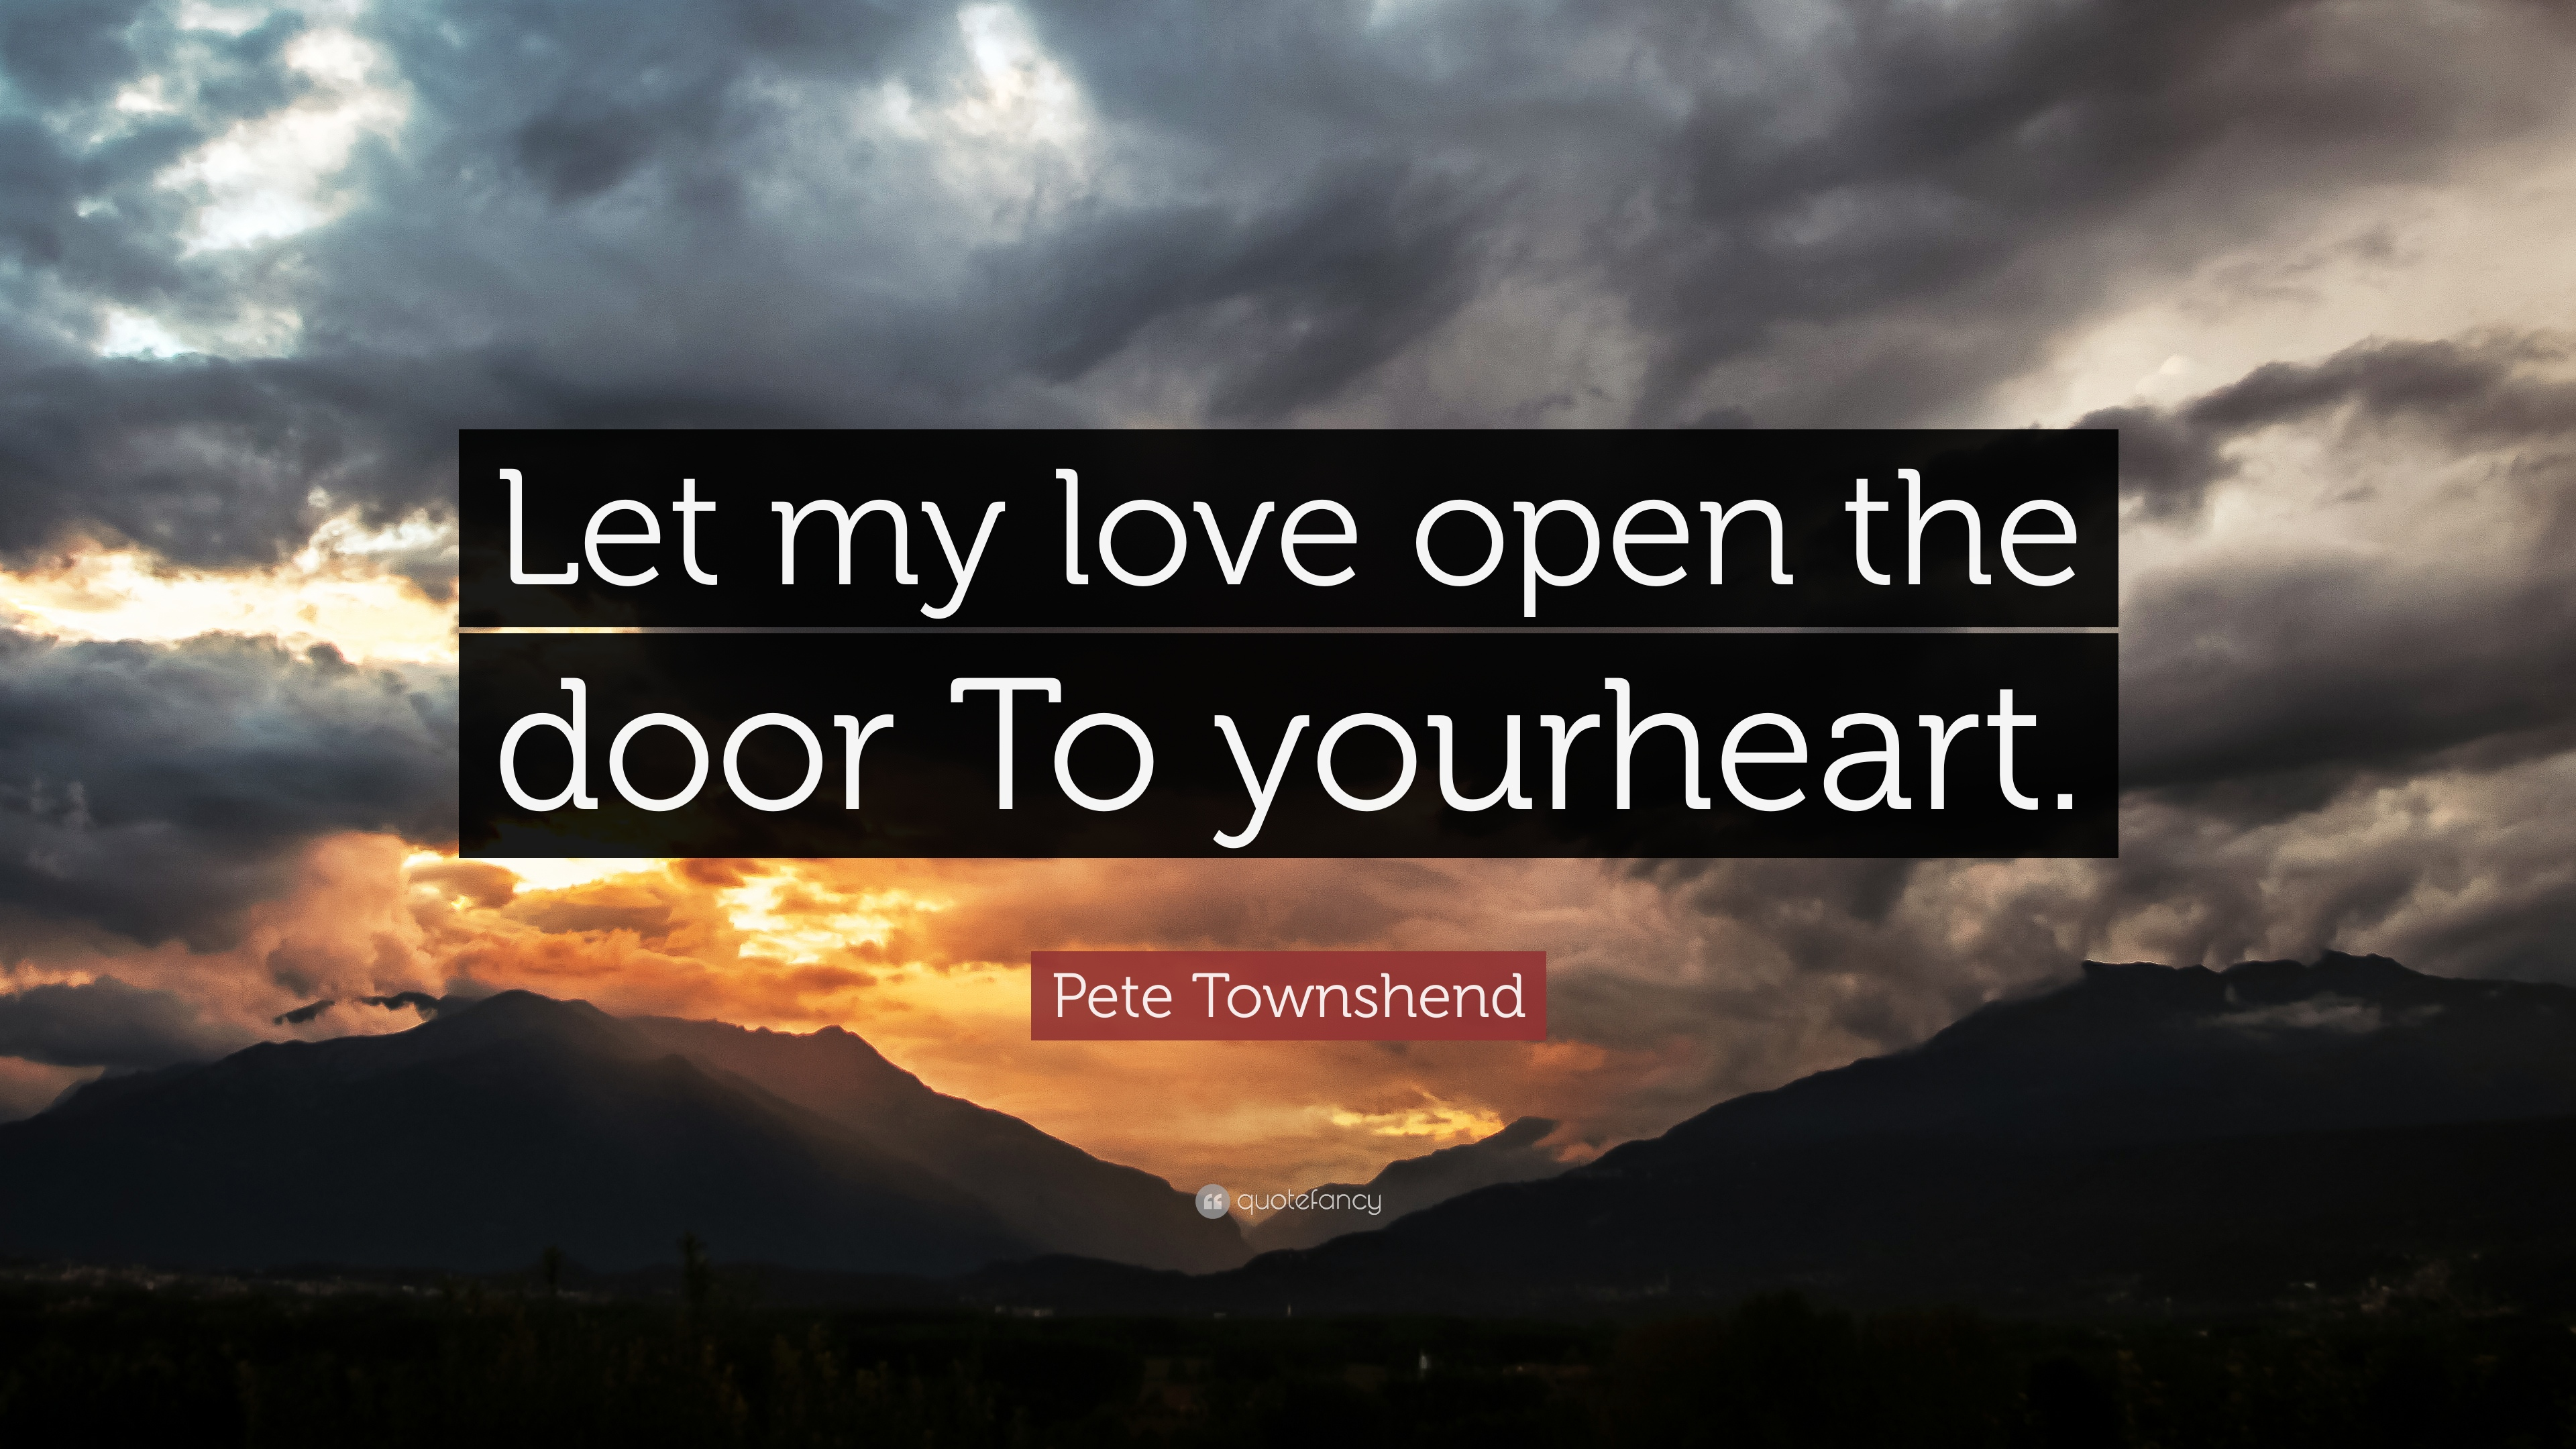 Pete Townshend Quote u201cLet my love open the door To yourheart.u201d & Pete Townshend Quote: u201cLet my love open the door To yourheart.u201d (7 ...